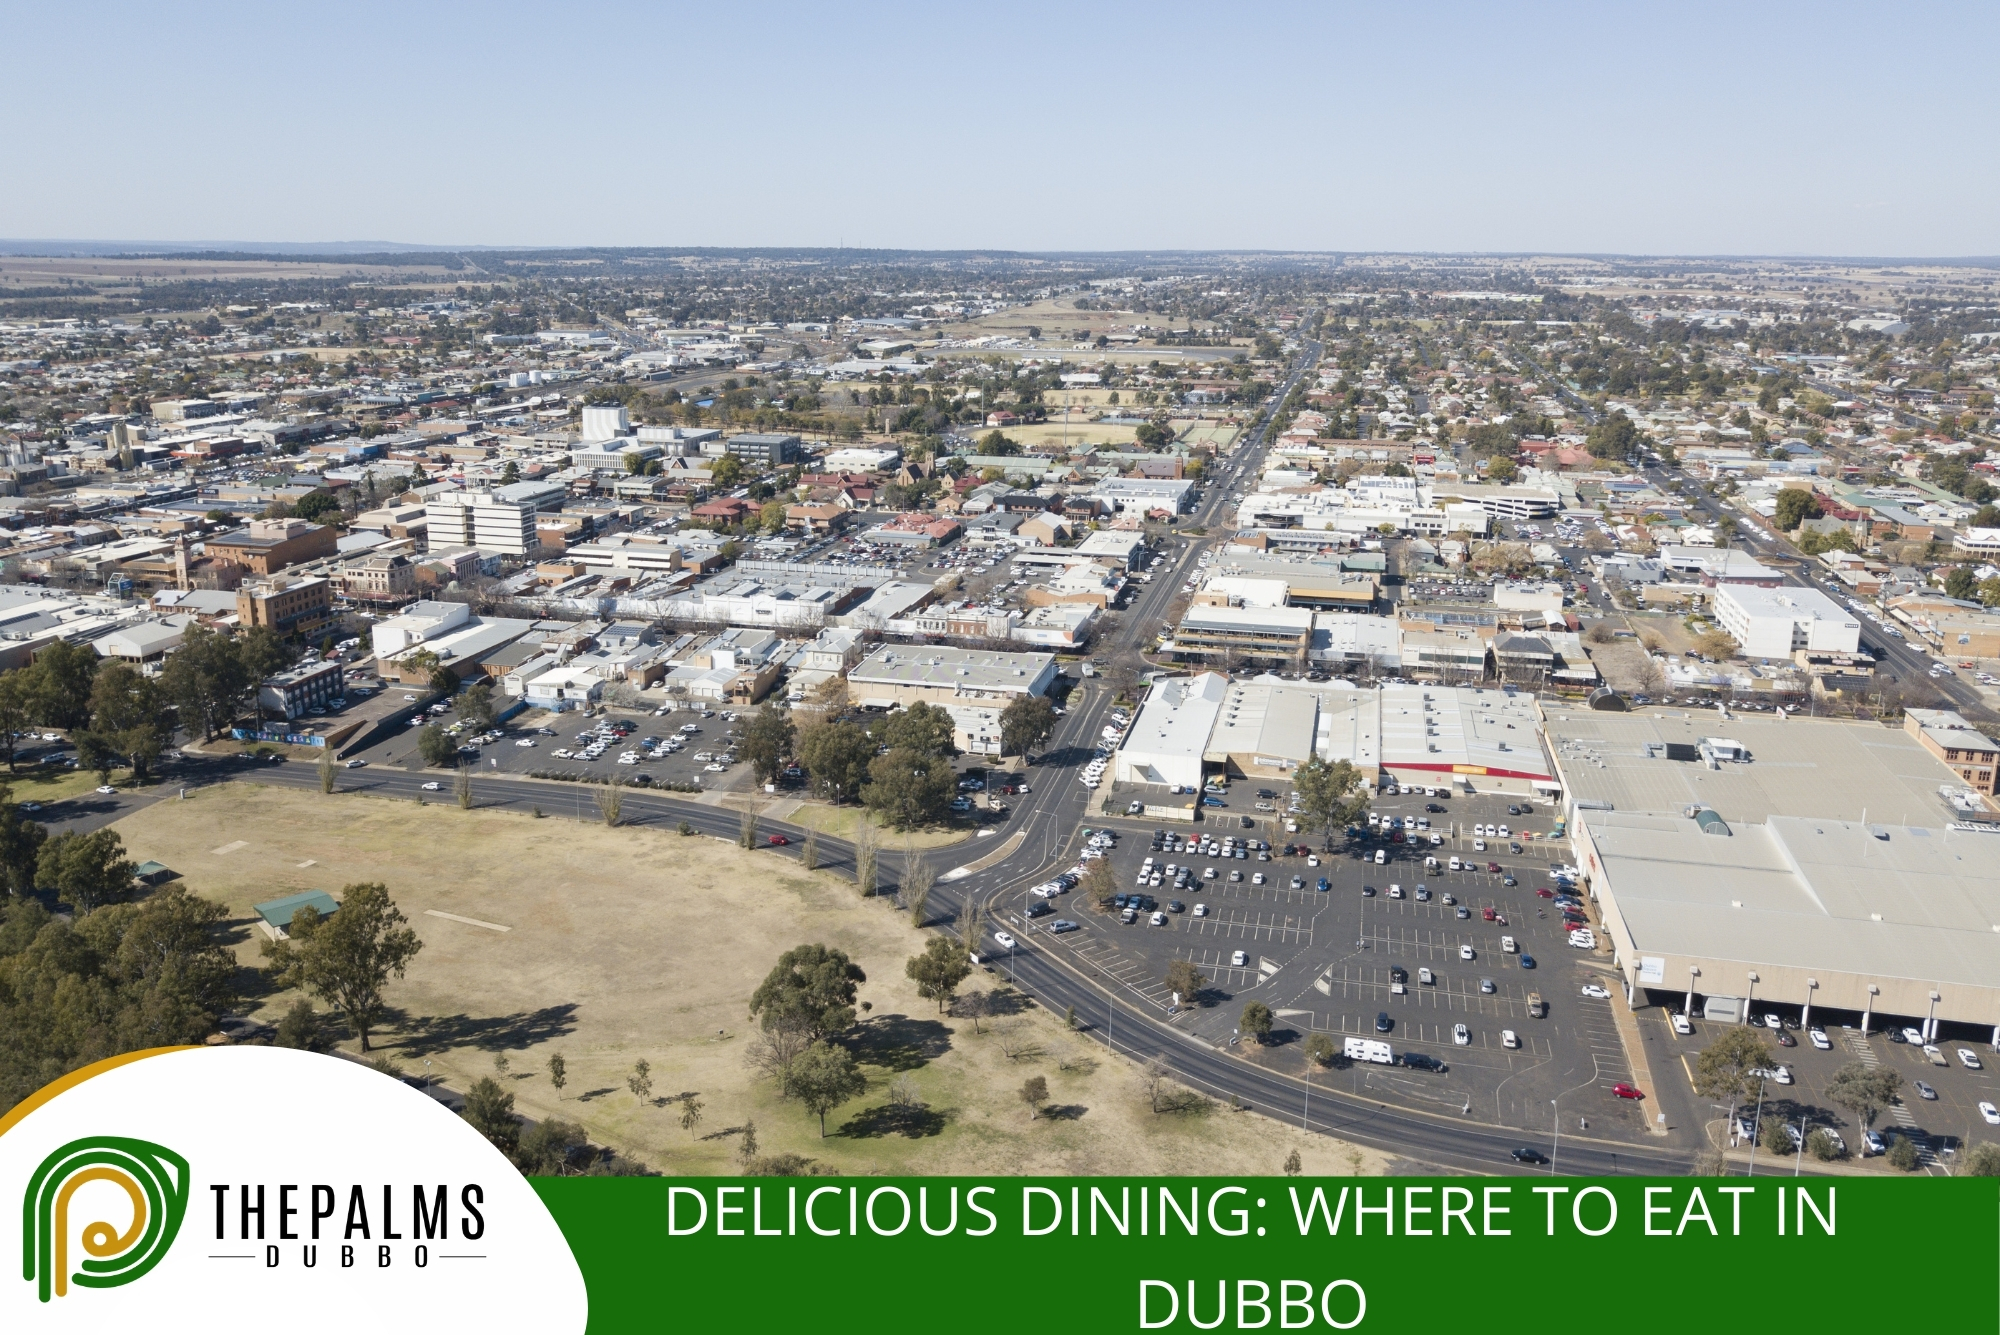 Delicious Dining Where to Eat in Dubbo